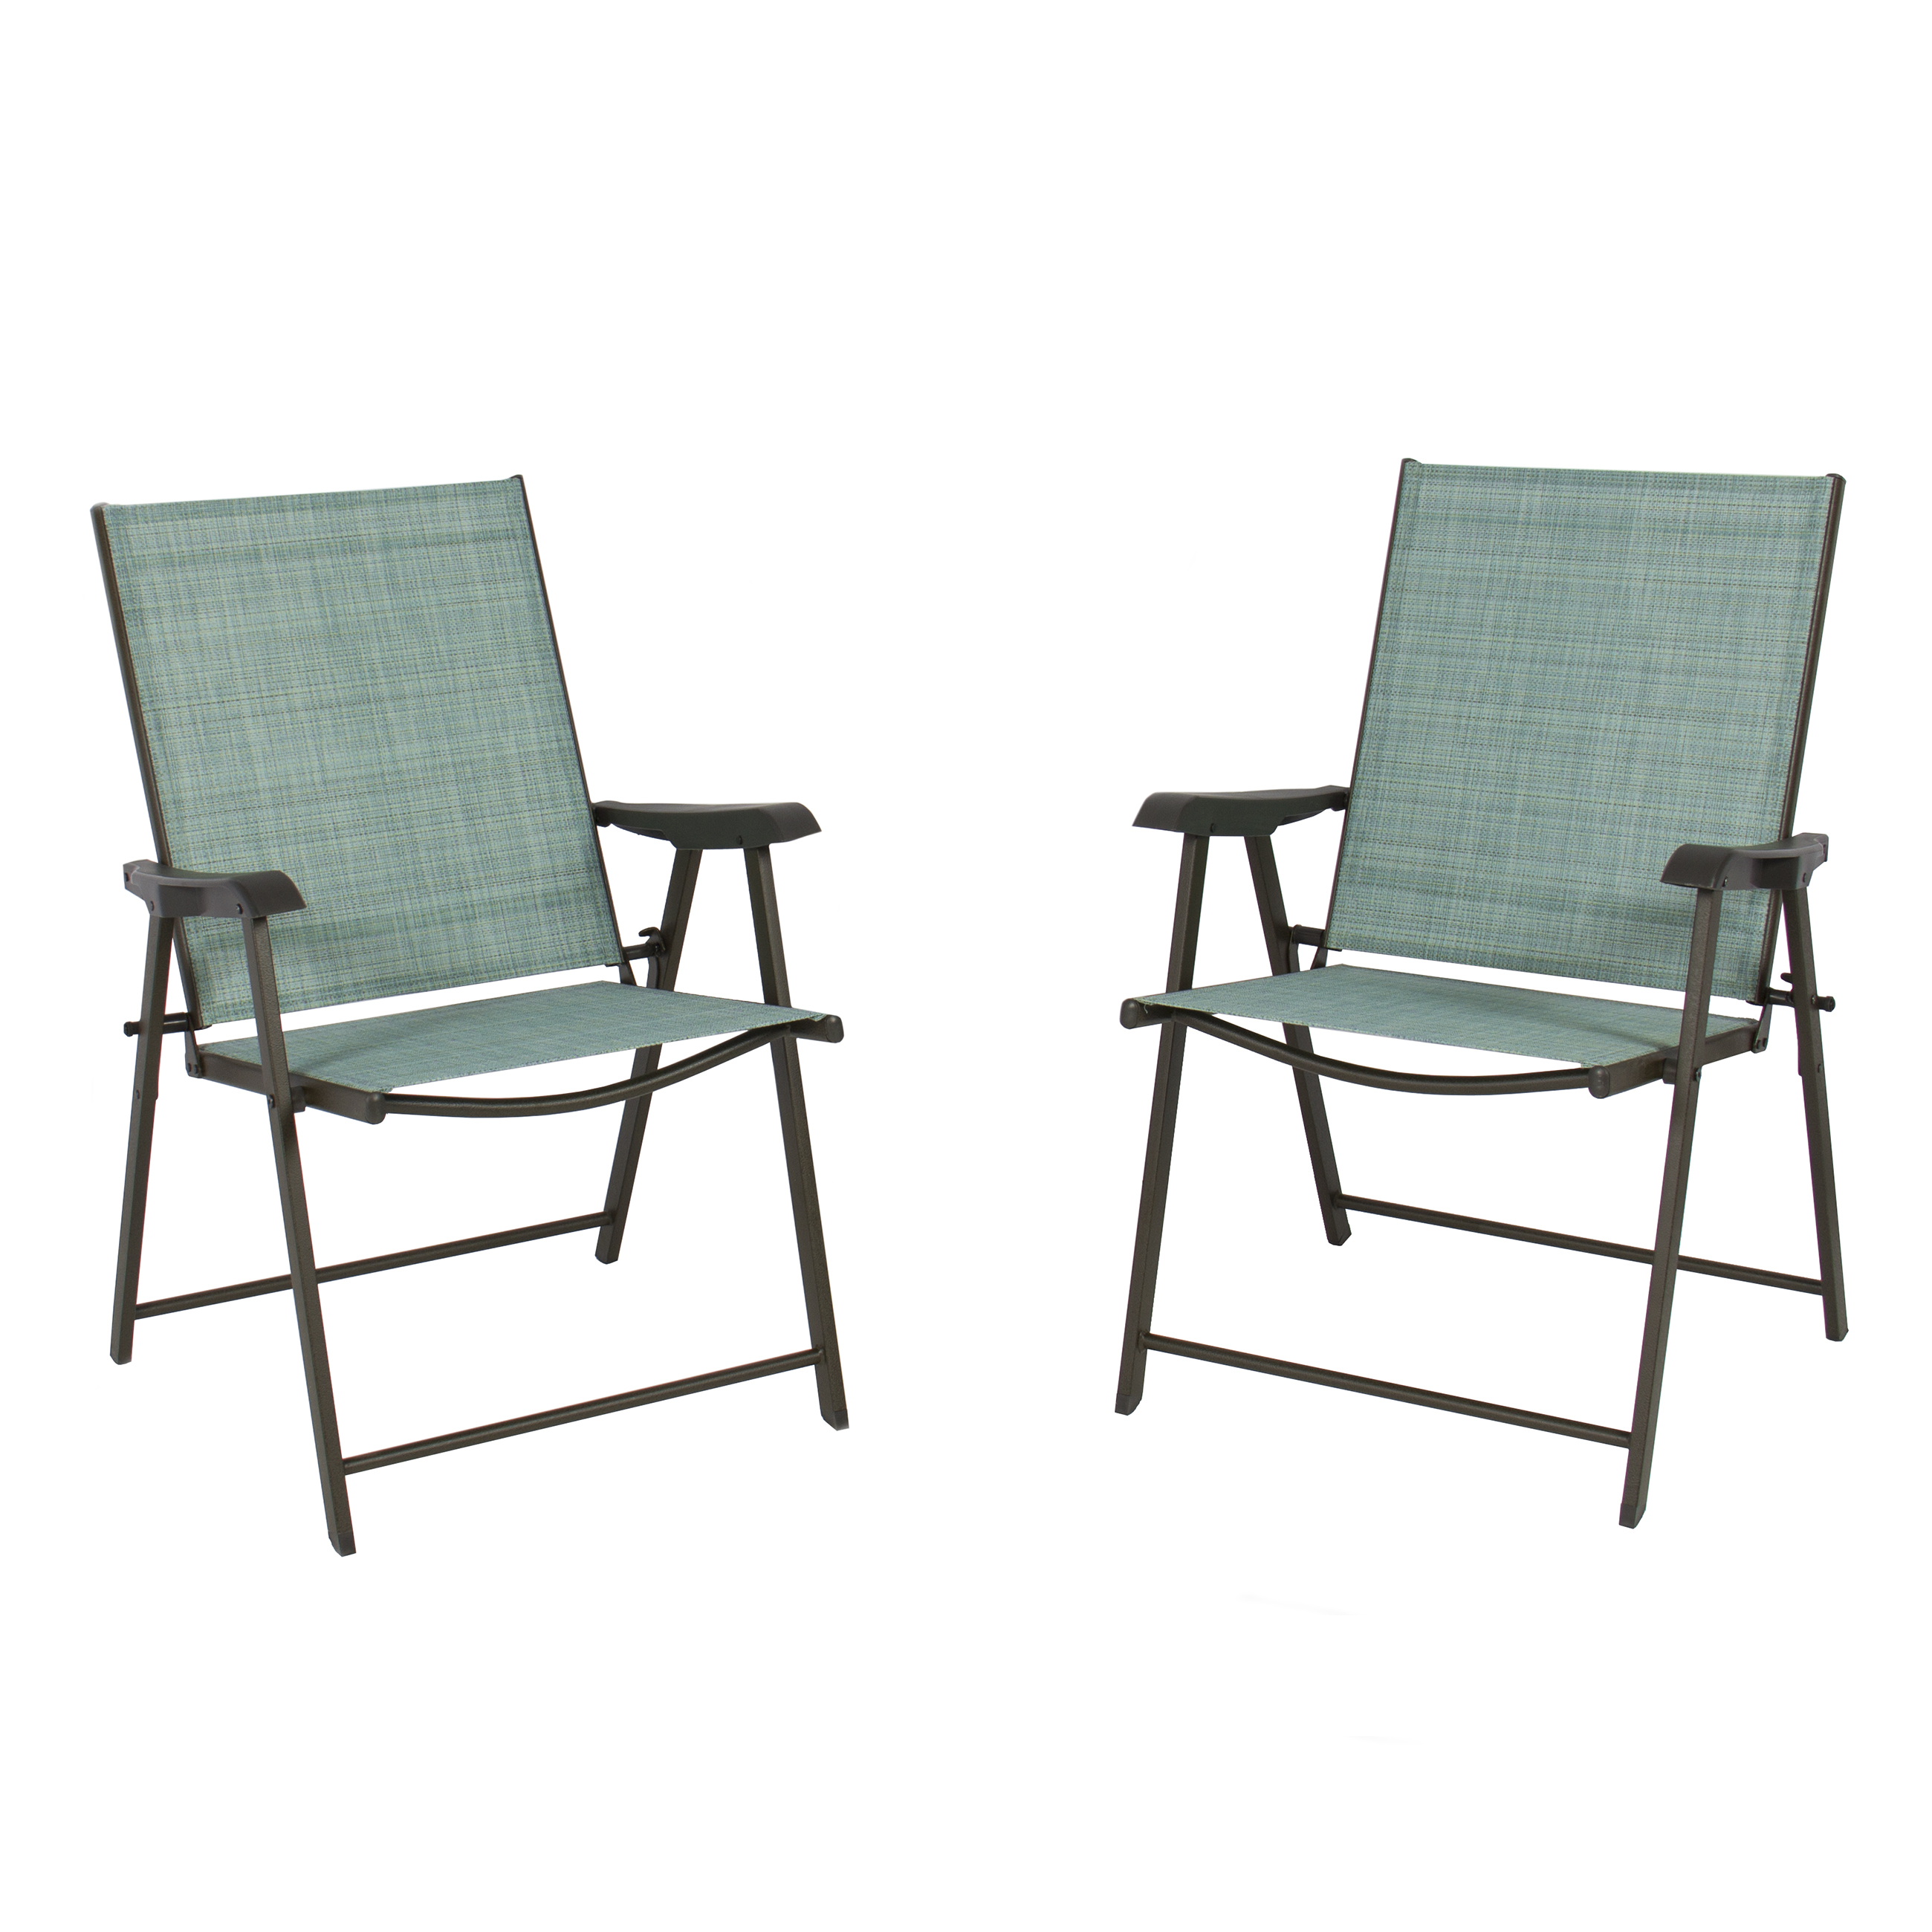 Set of 2 Folding Chairs Sling Bistro Set Outdoor Patio Furniture Space Saving